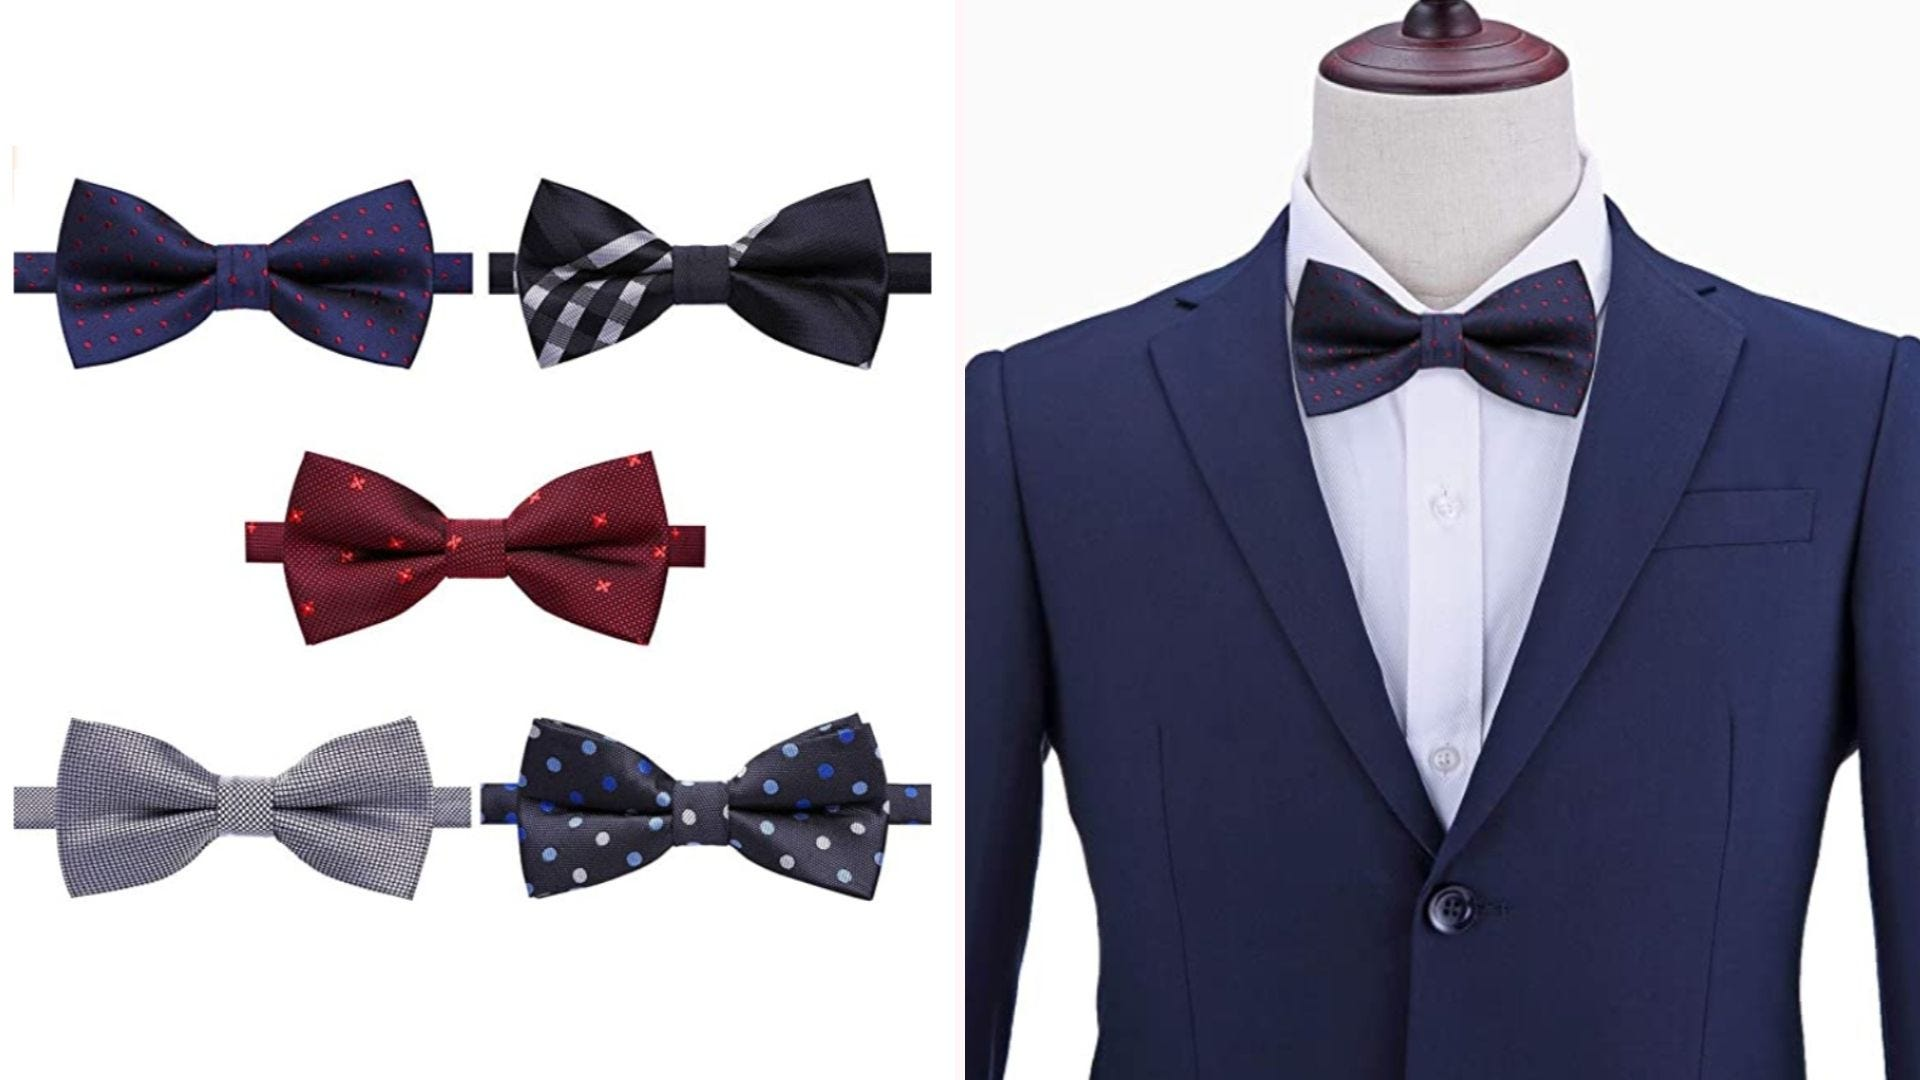 On the left, five patterned bow ties are displayed. On the right, a mannequin wears a navy suit with a blue bow tie.